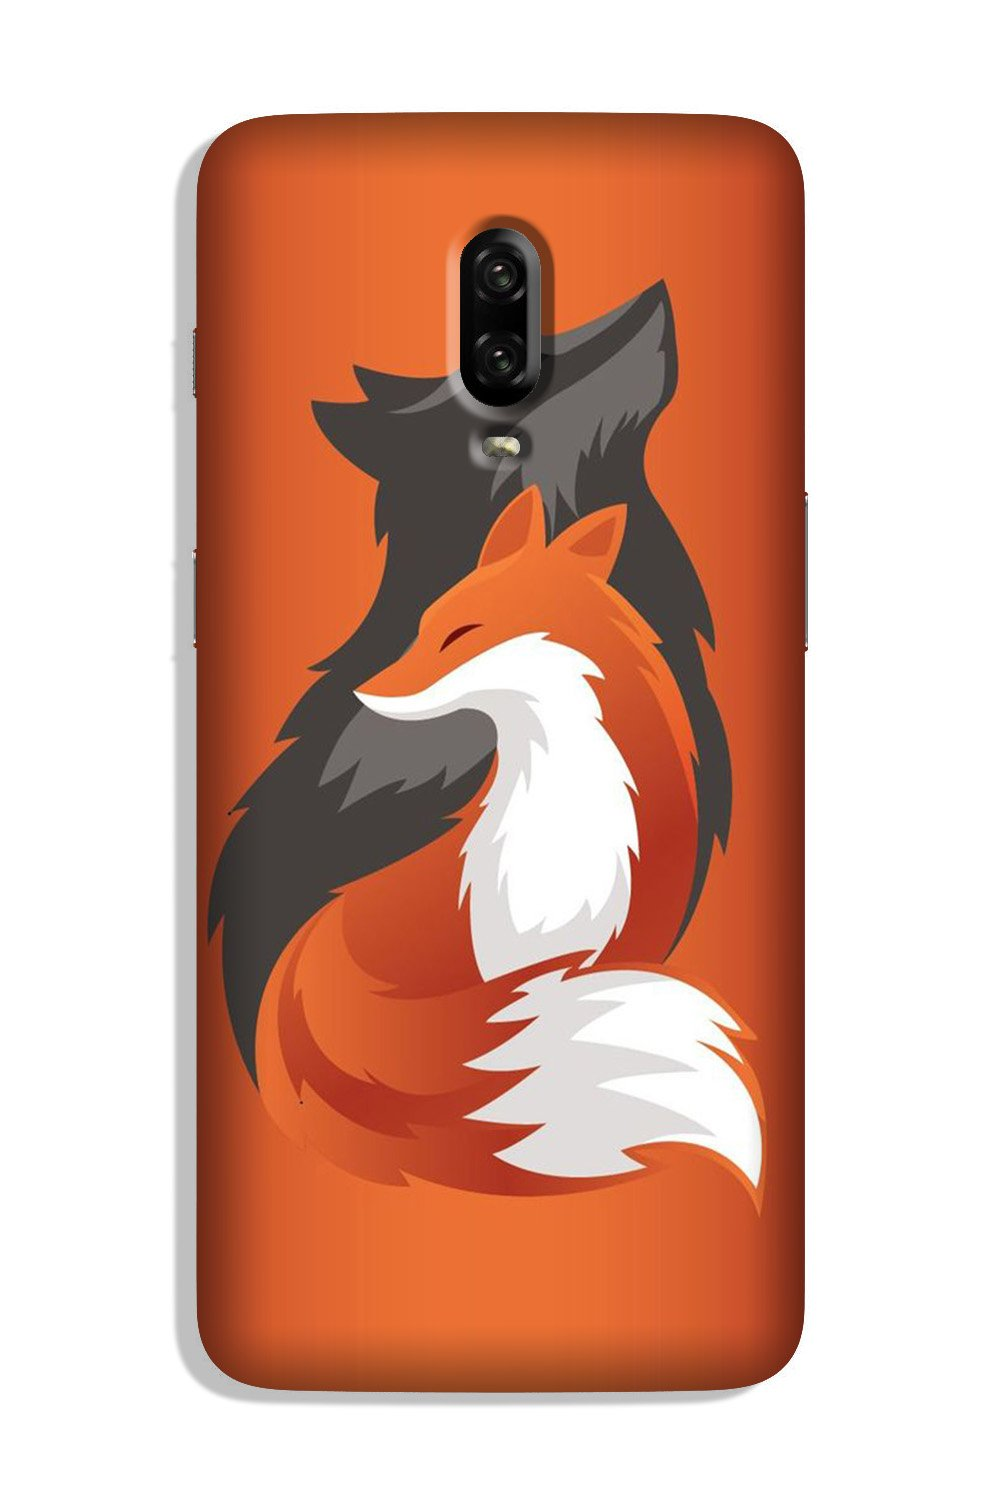 Wolf   Case for OnePlus 6T (Design No. 224)